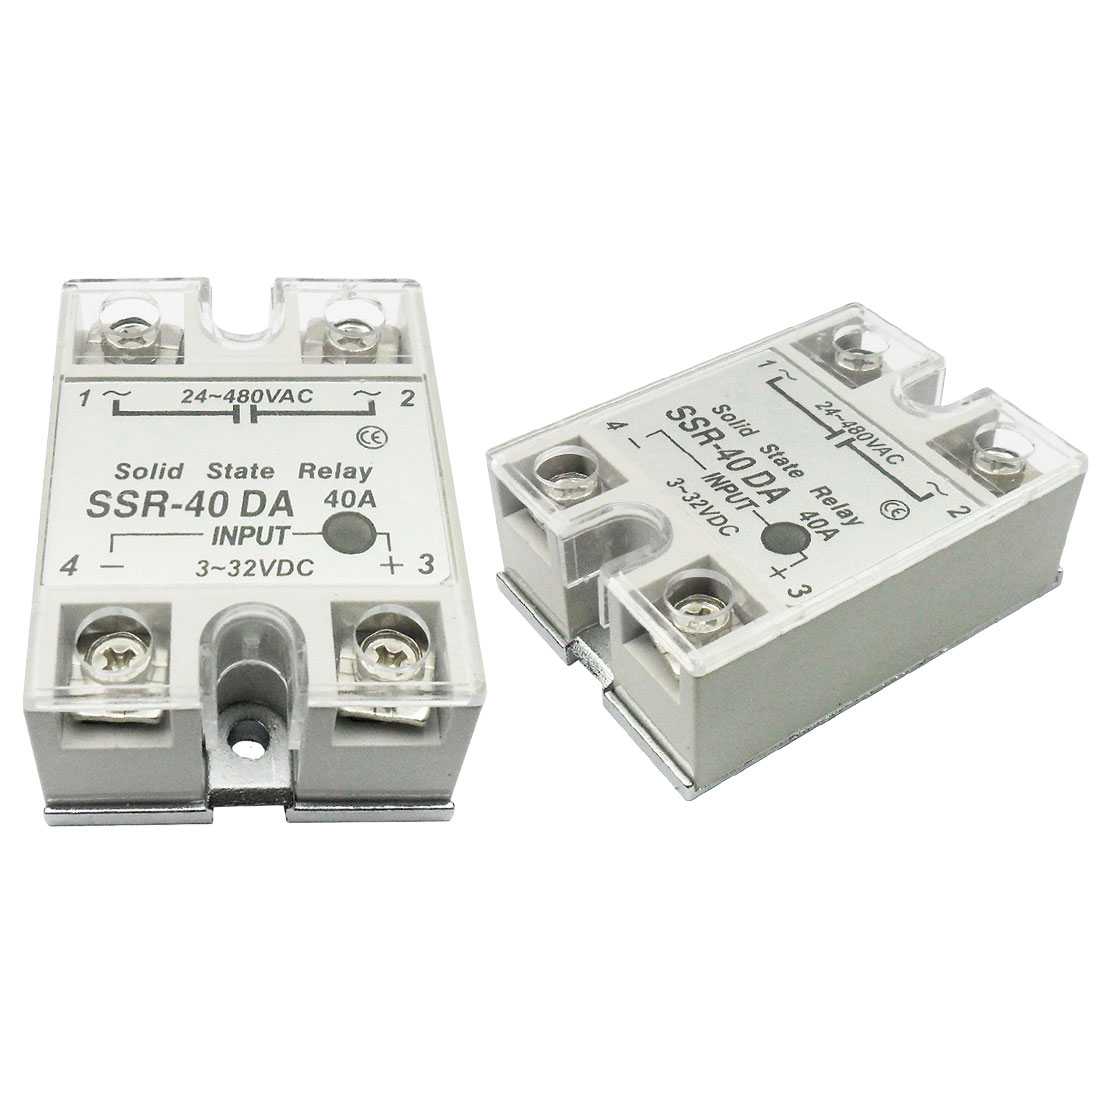 цена на Precision control solid state relay SSR 10DA 25DA 40DA actually 3-32V DC TO 24-480V AC 10A 25A 40A Relay High-quality